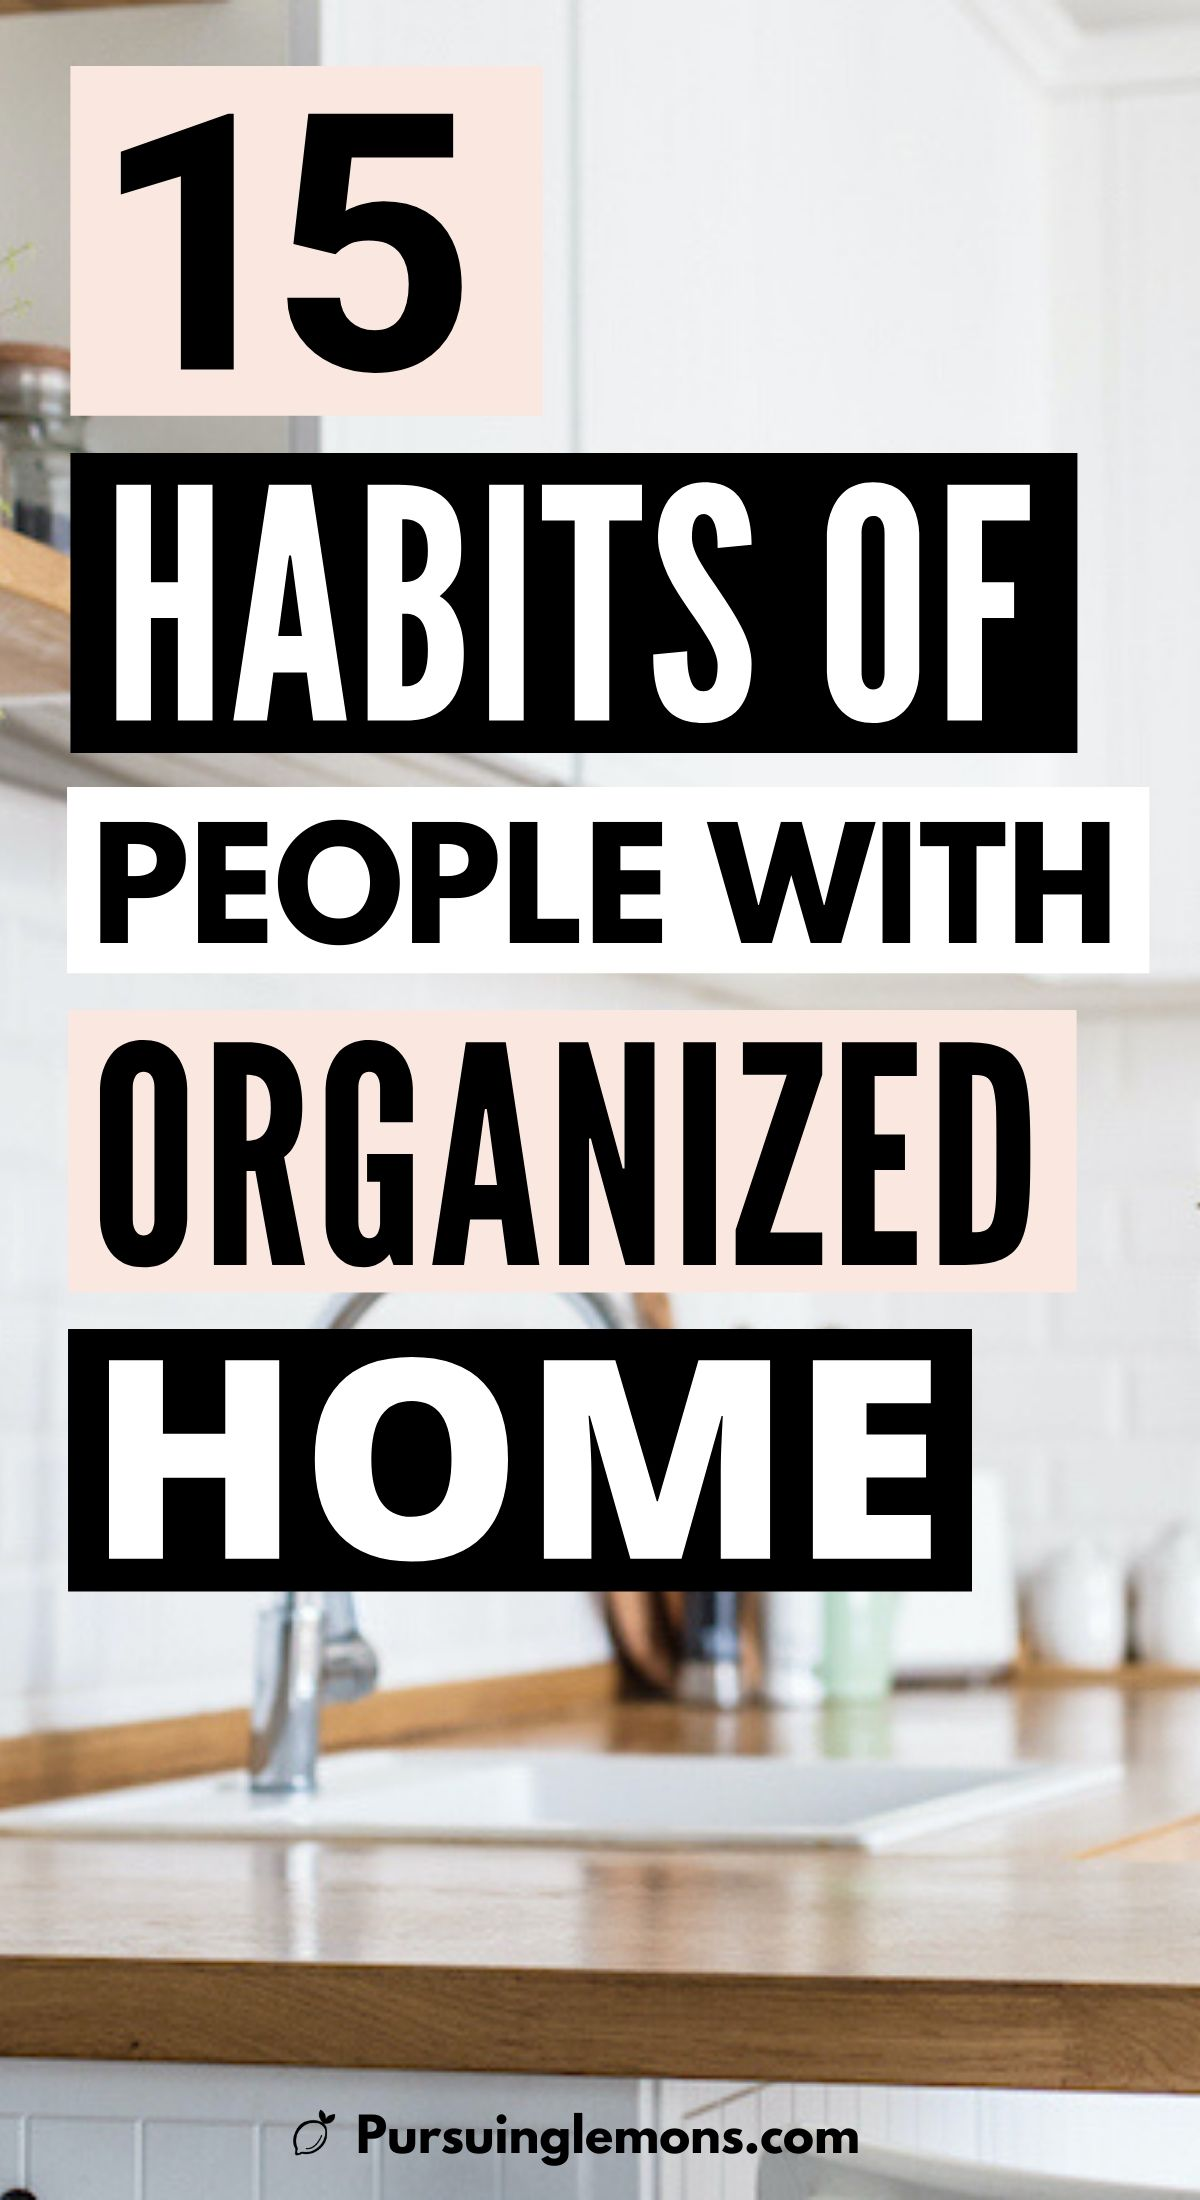 If you need some good organization hacks, then definitely read this post that'll help you with your organizing habits. These are really good organizing tips for your home. Start adopting these habits to make a better, organized home. #habits #organization #organizing